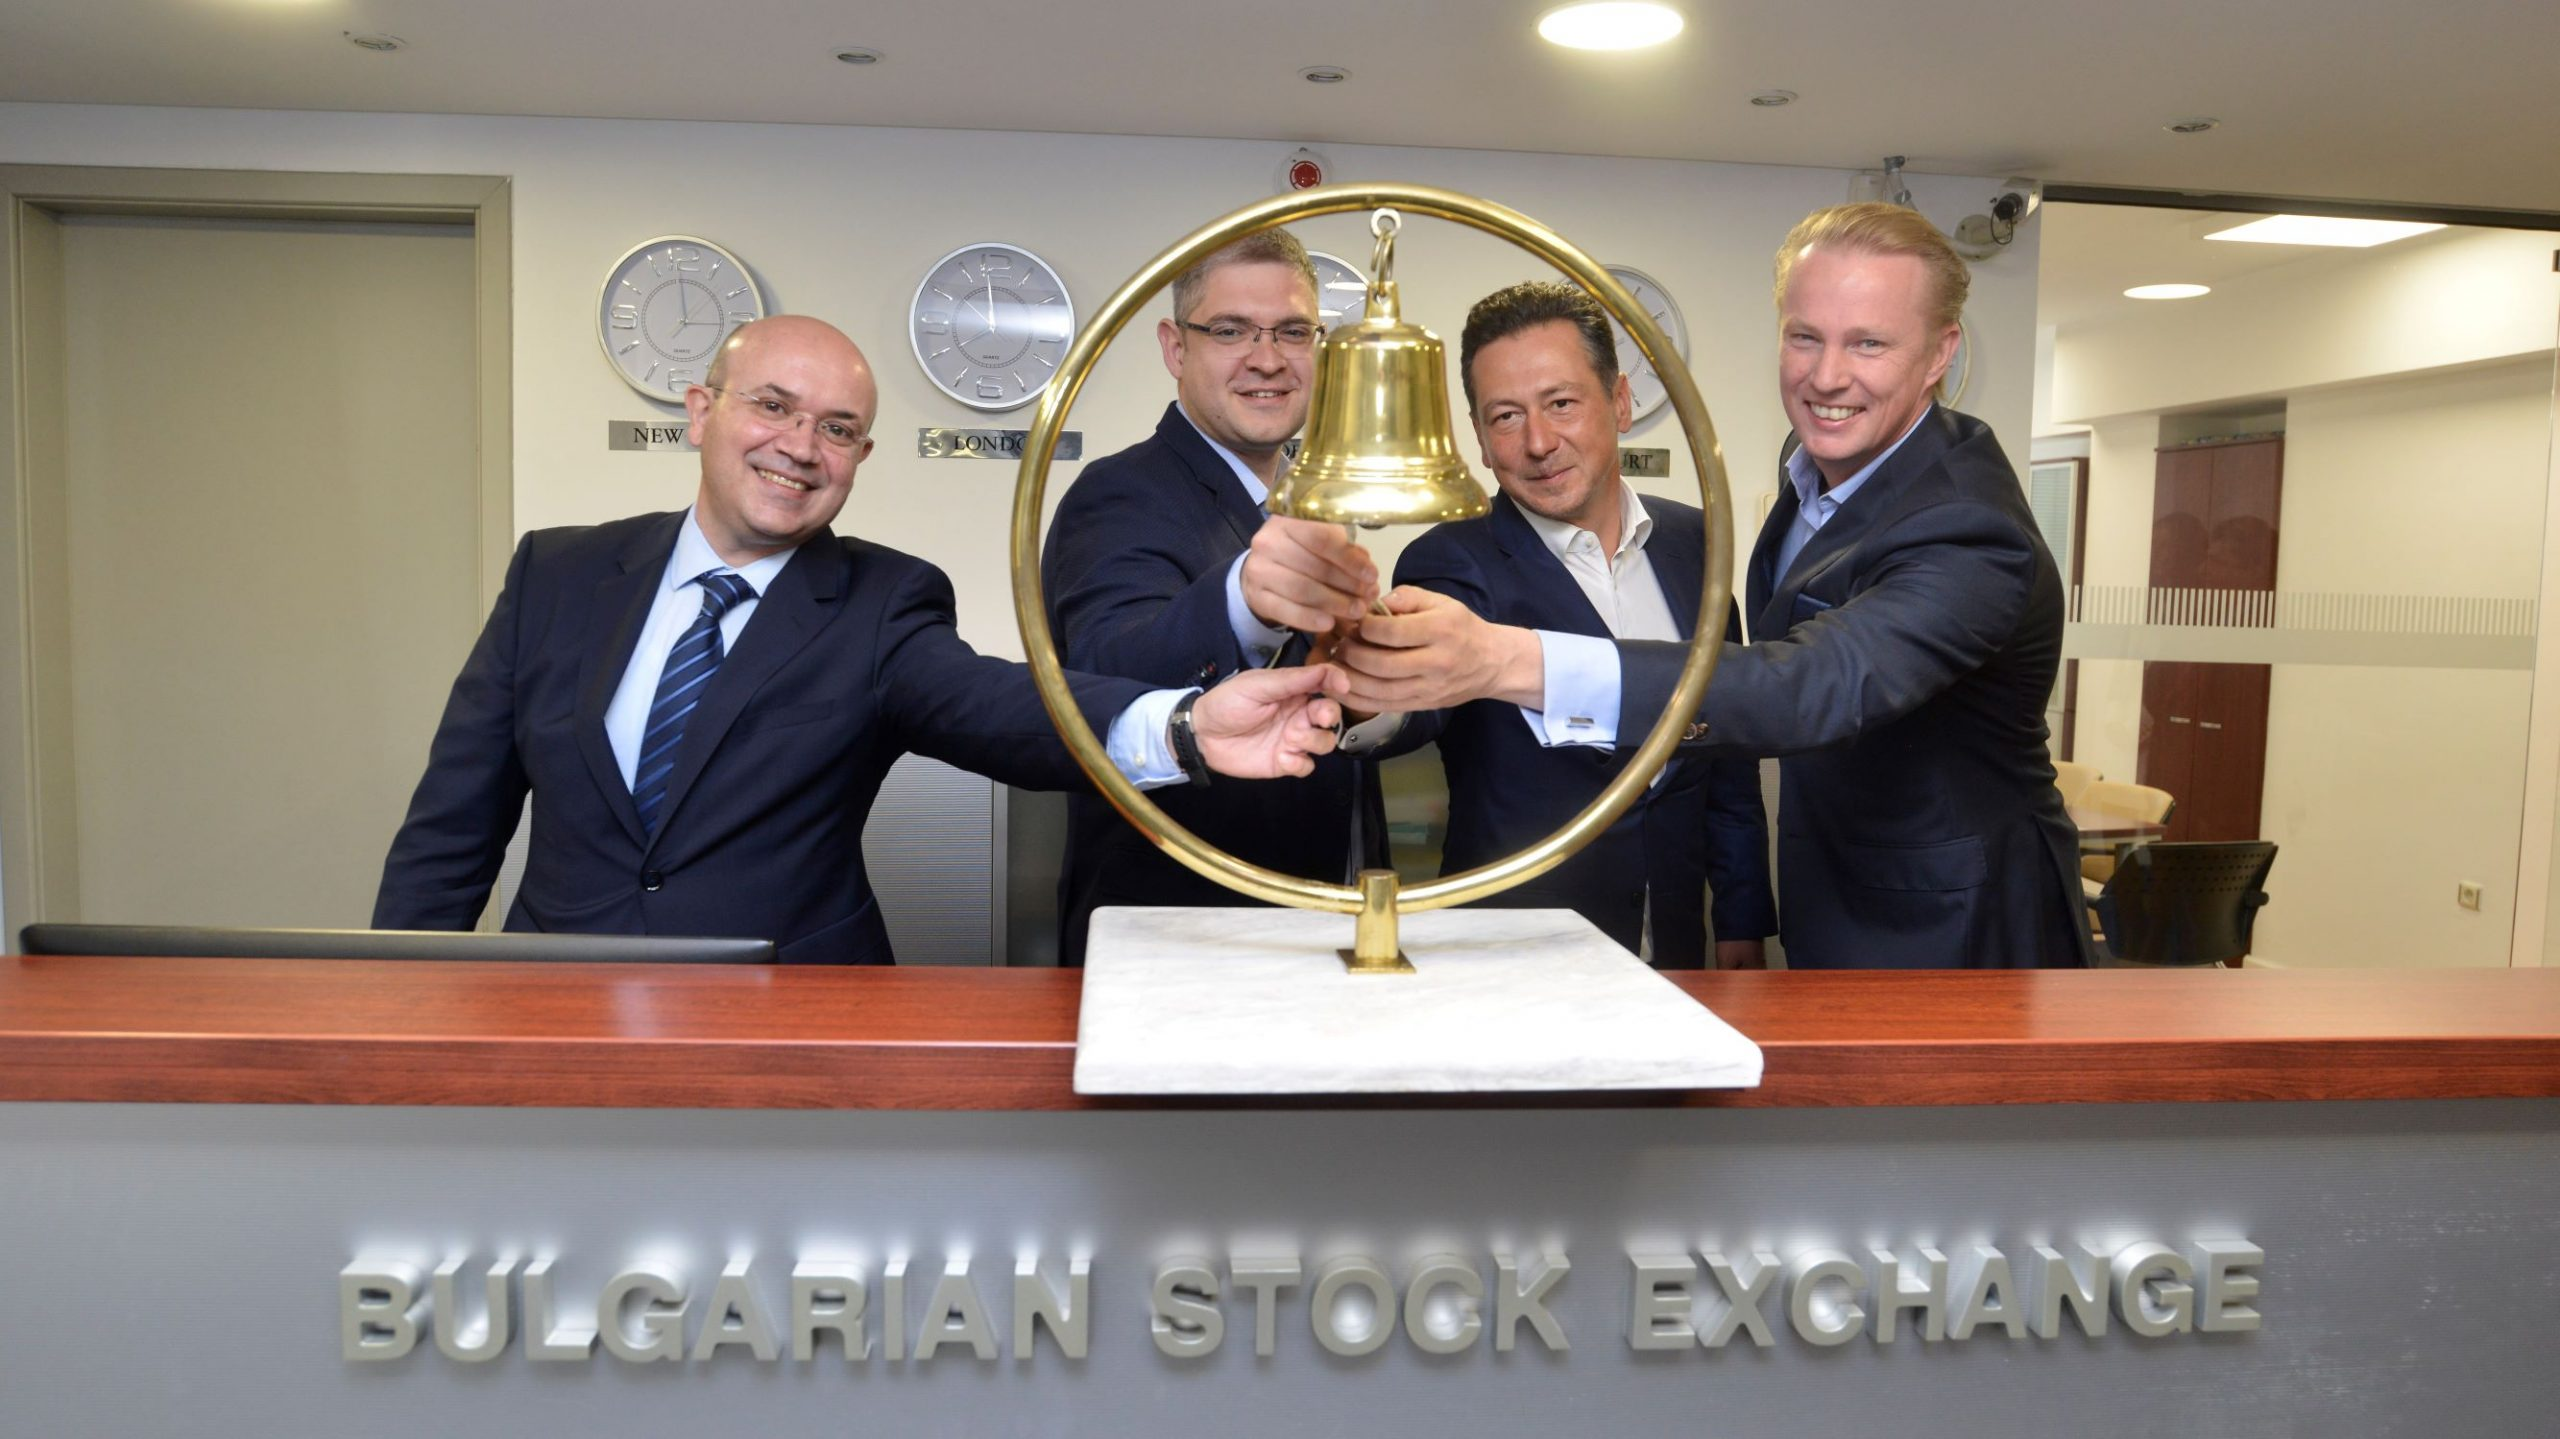 Bulgarian Stock Exchange Welcomes Telelink Business Services to Its Floor